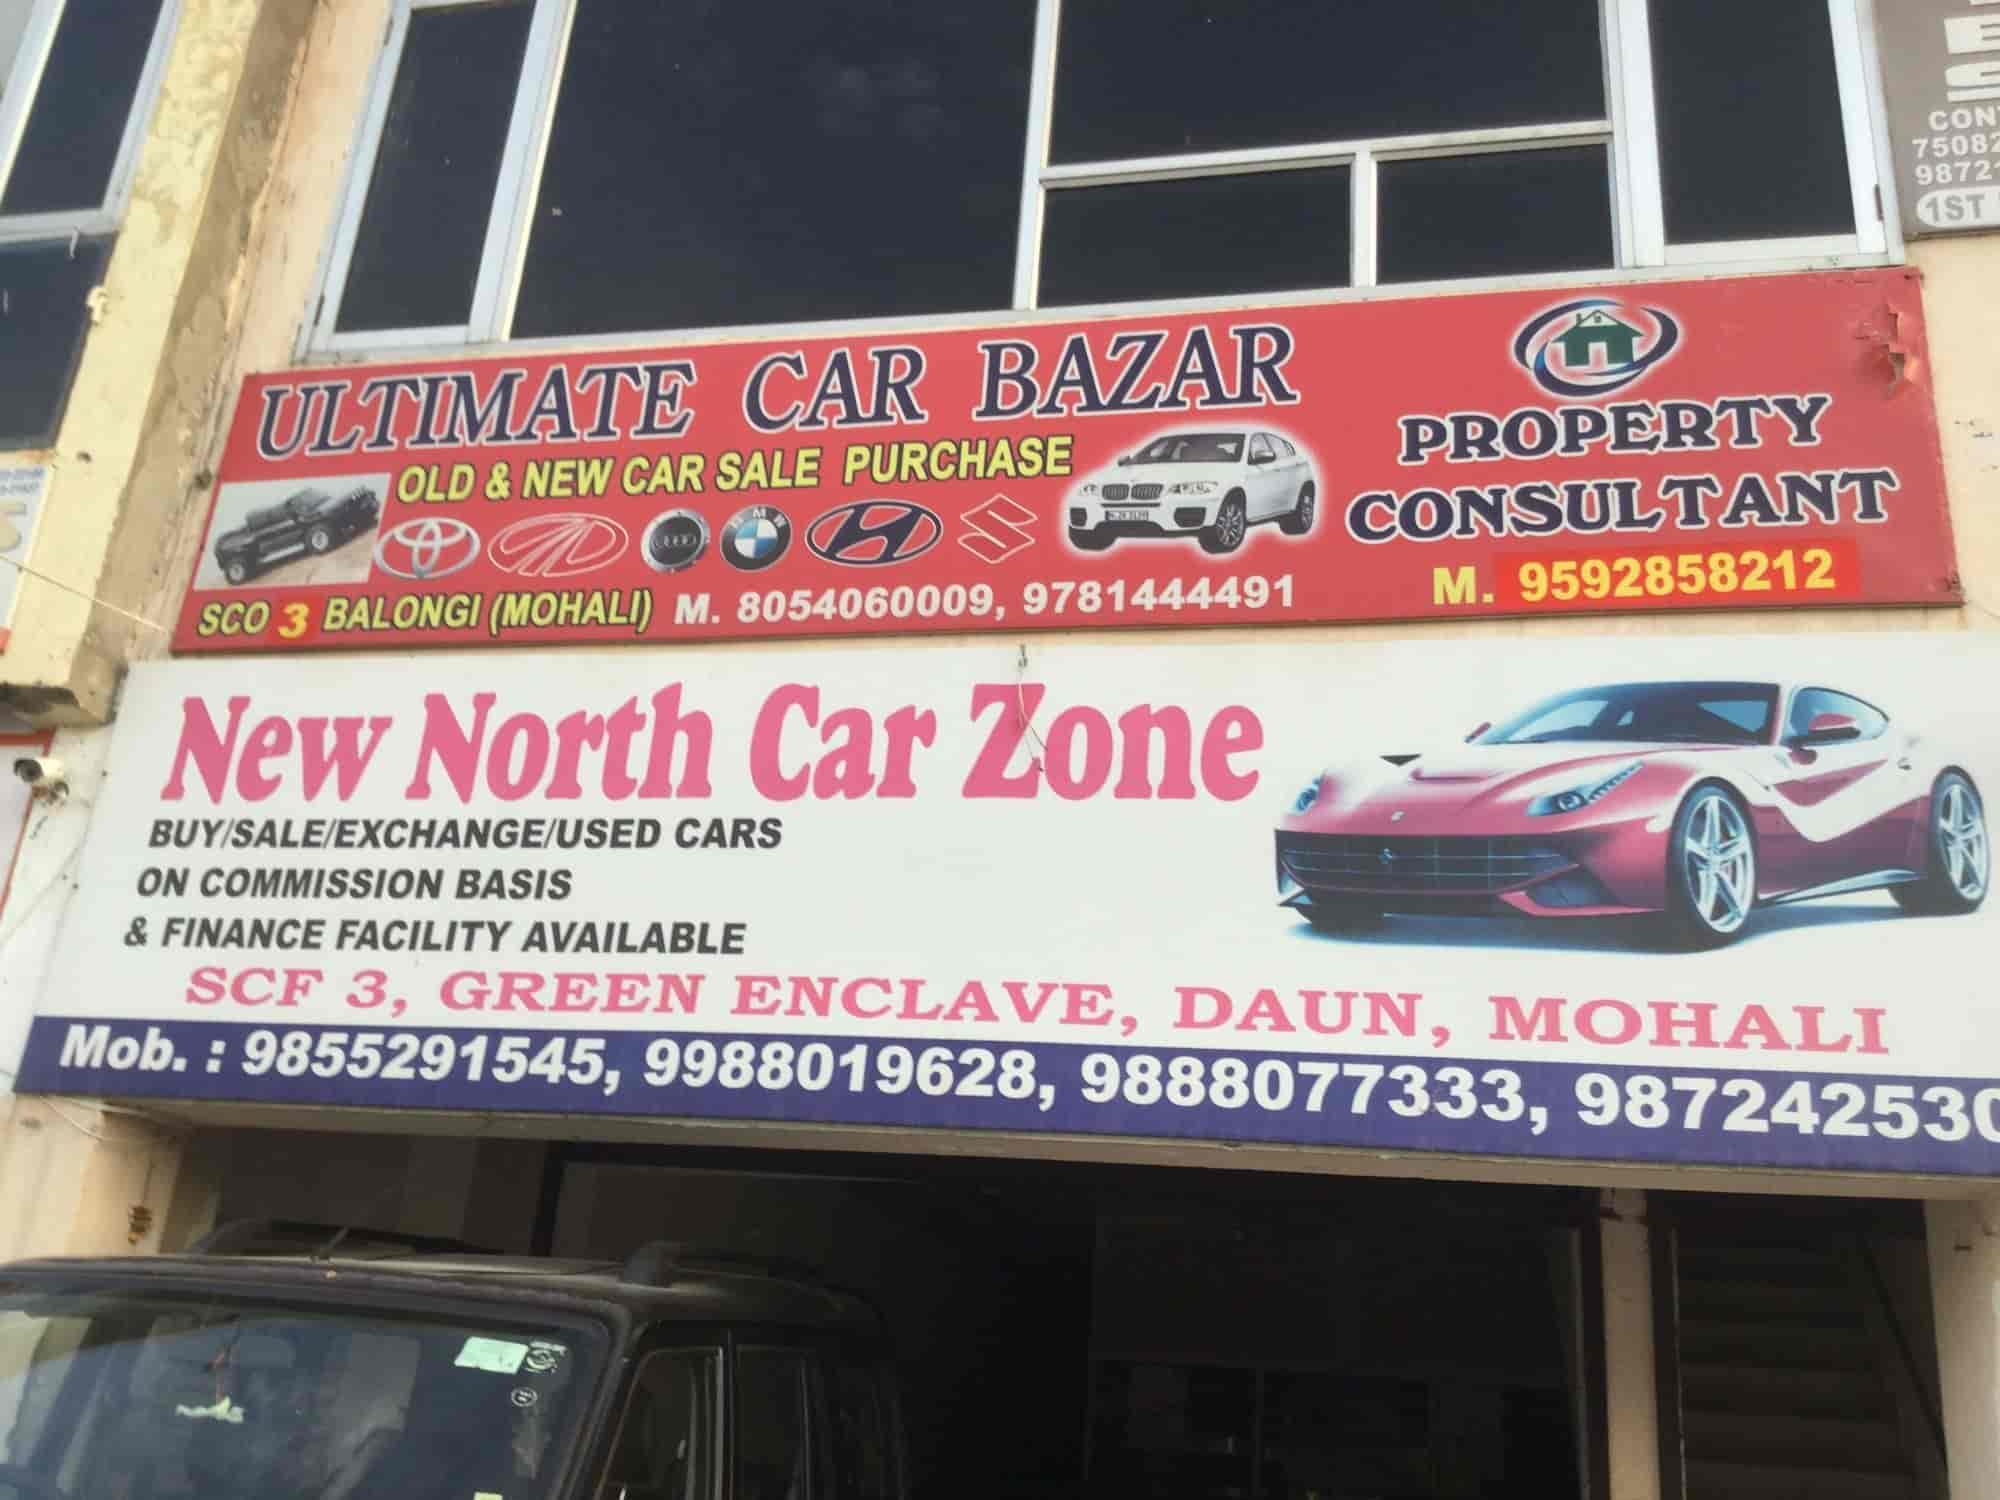 New North Car Zone Photos, Mohali, Chandigarh- Pictures & Images ...